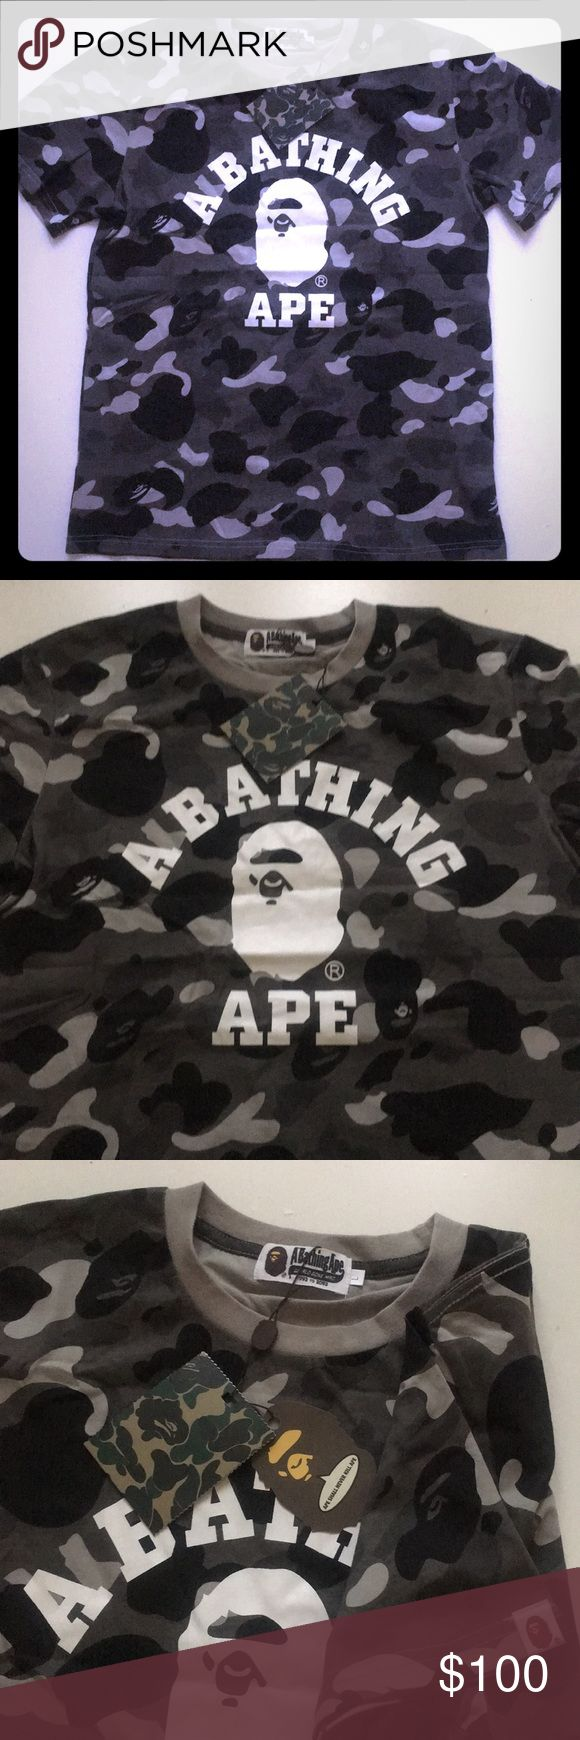 Bape Shirt Black/Gray Camo Print NWT L Brand new, authentic with original packaging and unisex. Size large but fits like a medium. Let me know if you need measurements. Bape Shirts Tees - Short Sleeve